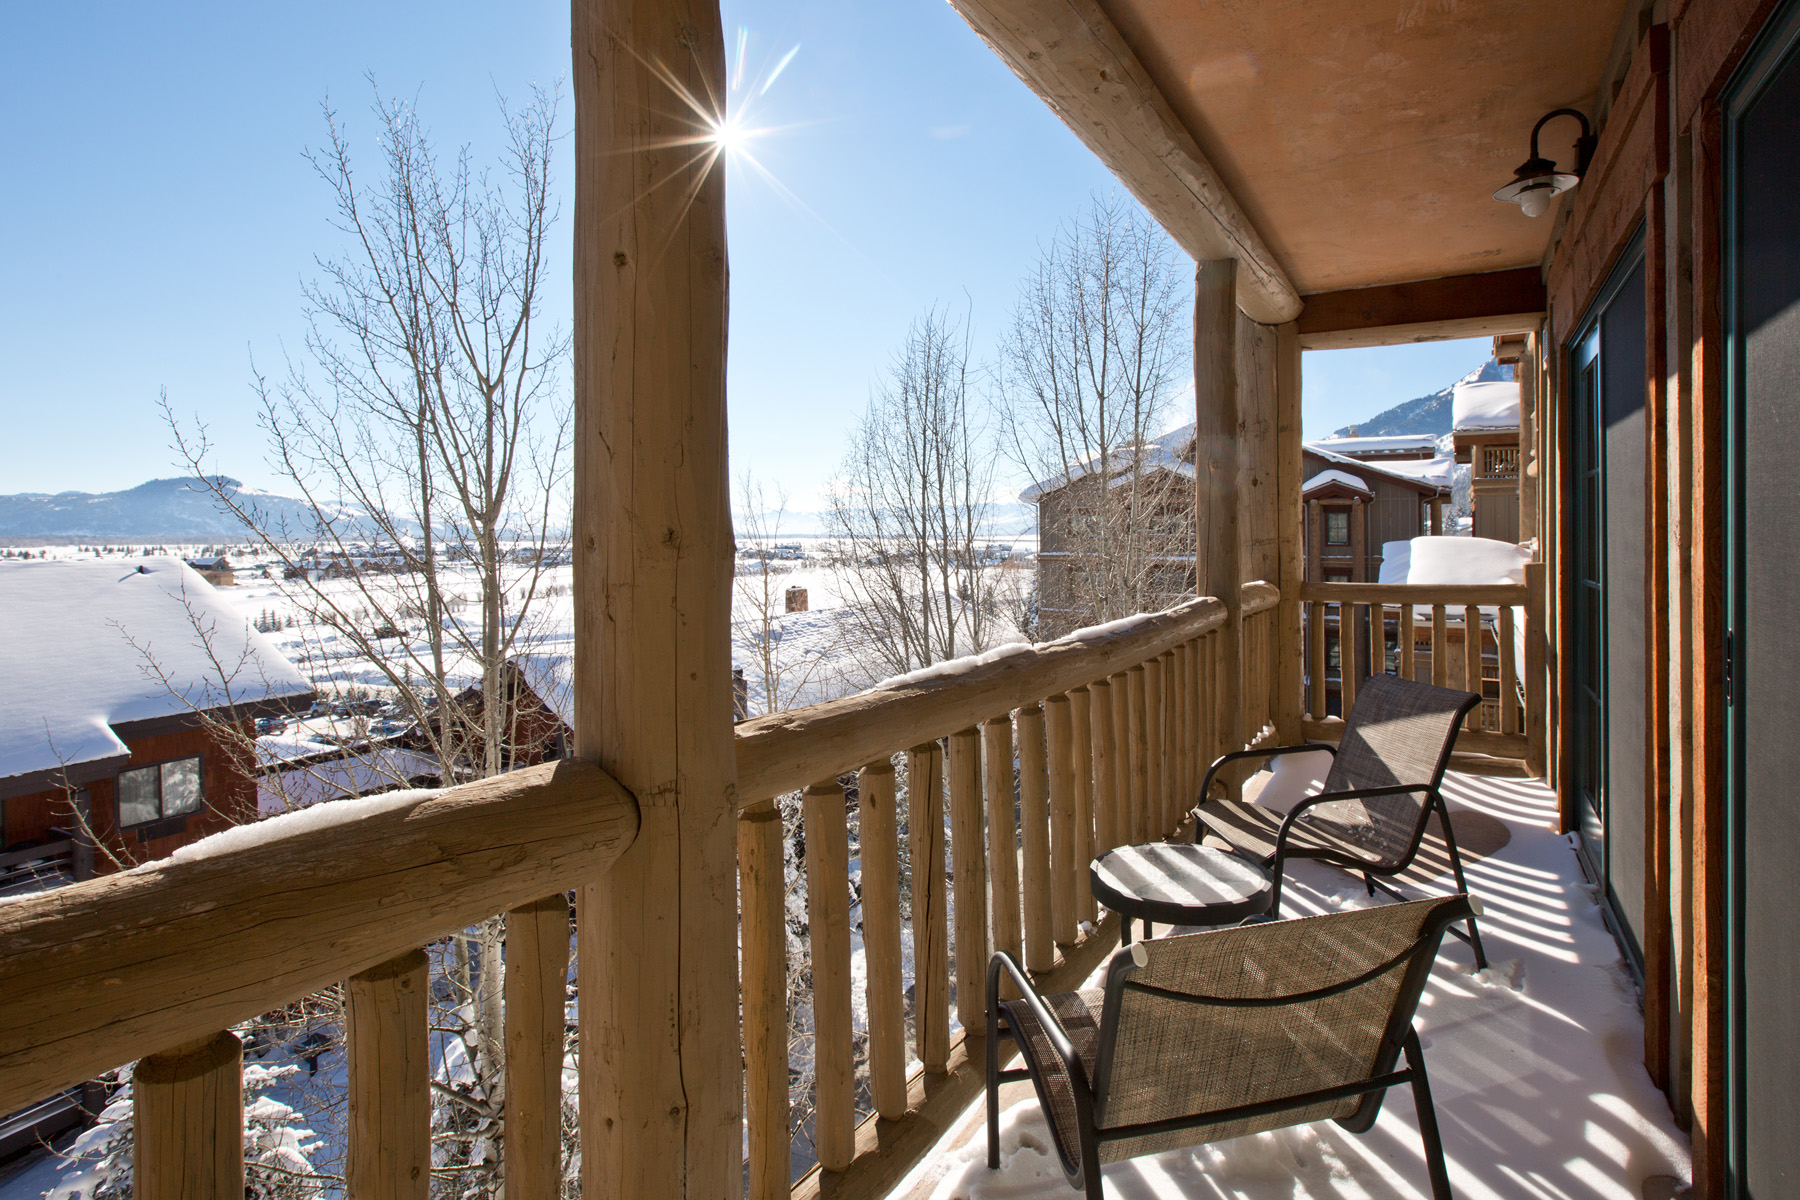 Condomínio para Venda às 2 bdrm 2 bath condo in Teton Village 3385 W. Cody Lane units 301300 Teton Mountain Lodge Teton Village, Wyoming, 83025 Jackson Hole, Estados Unidos